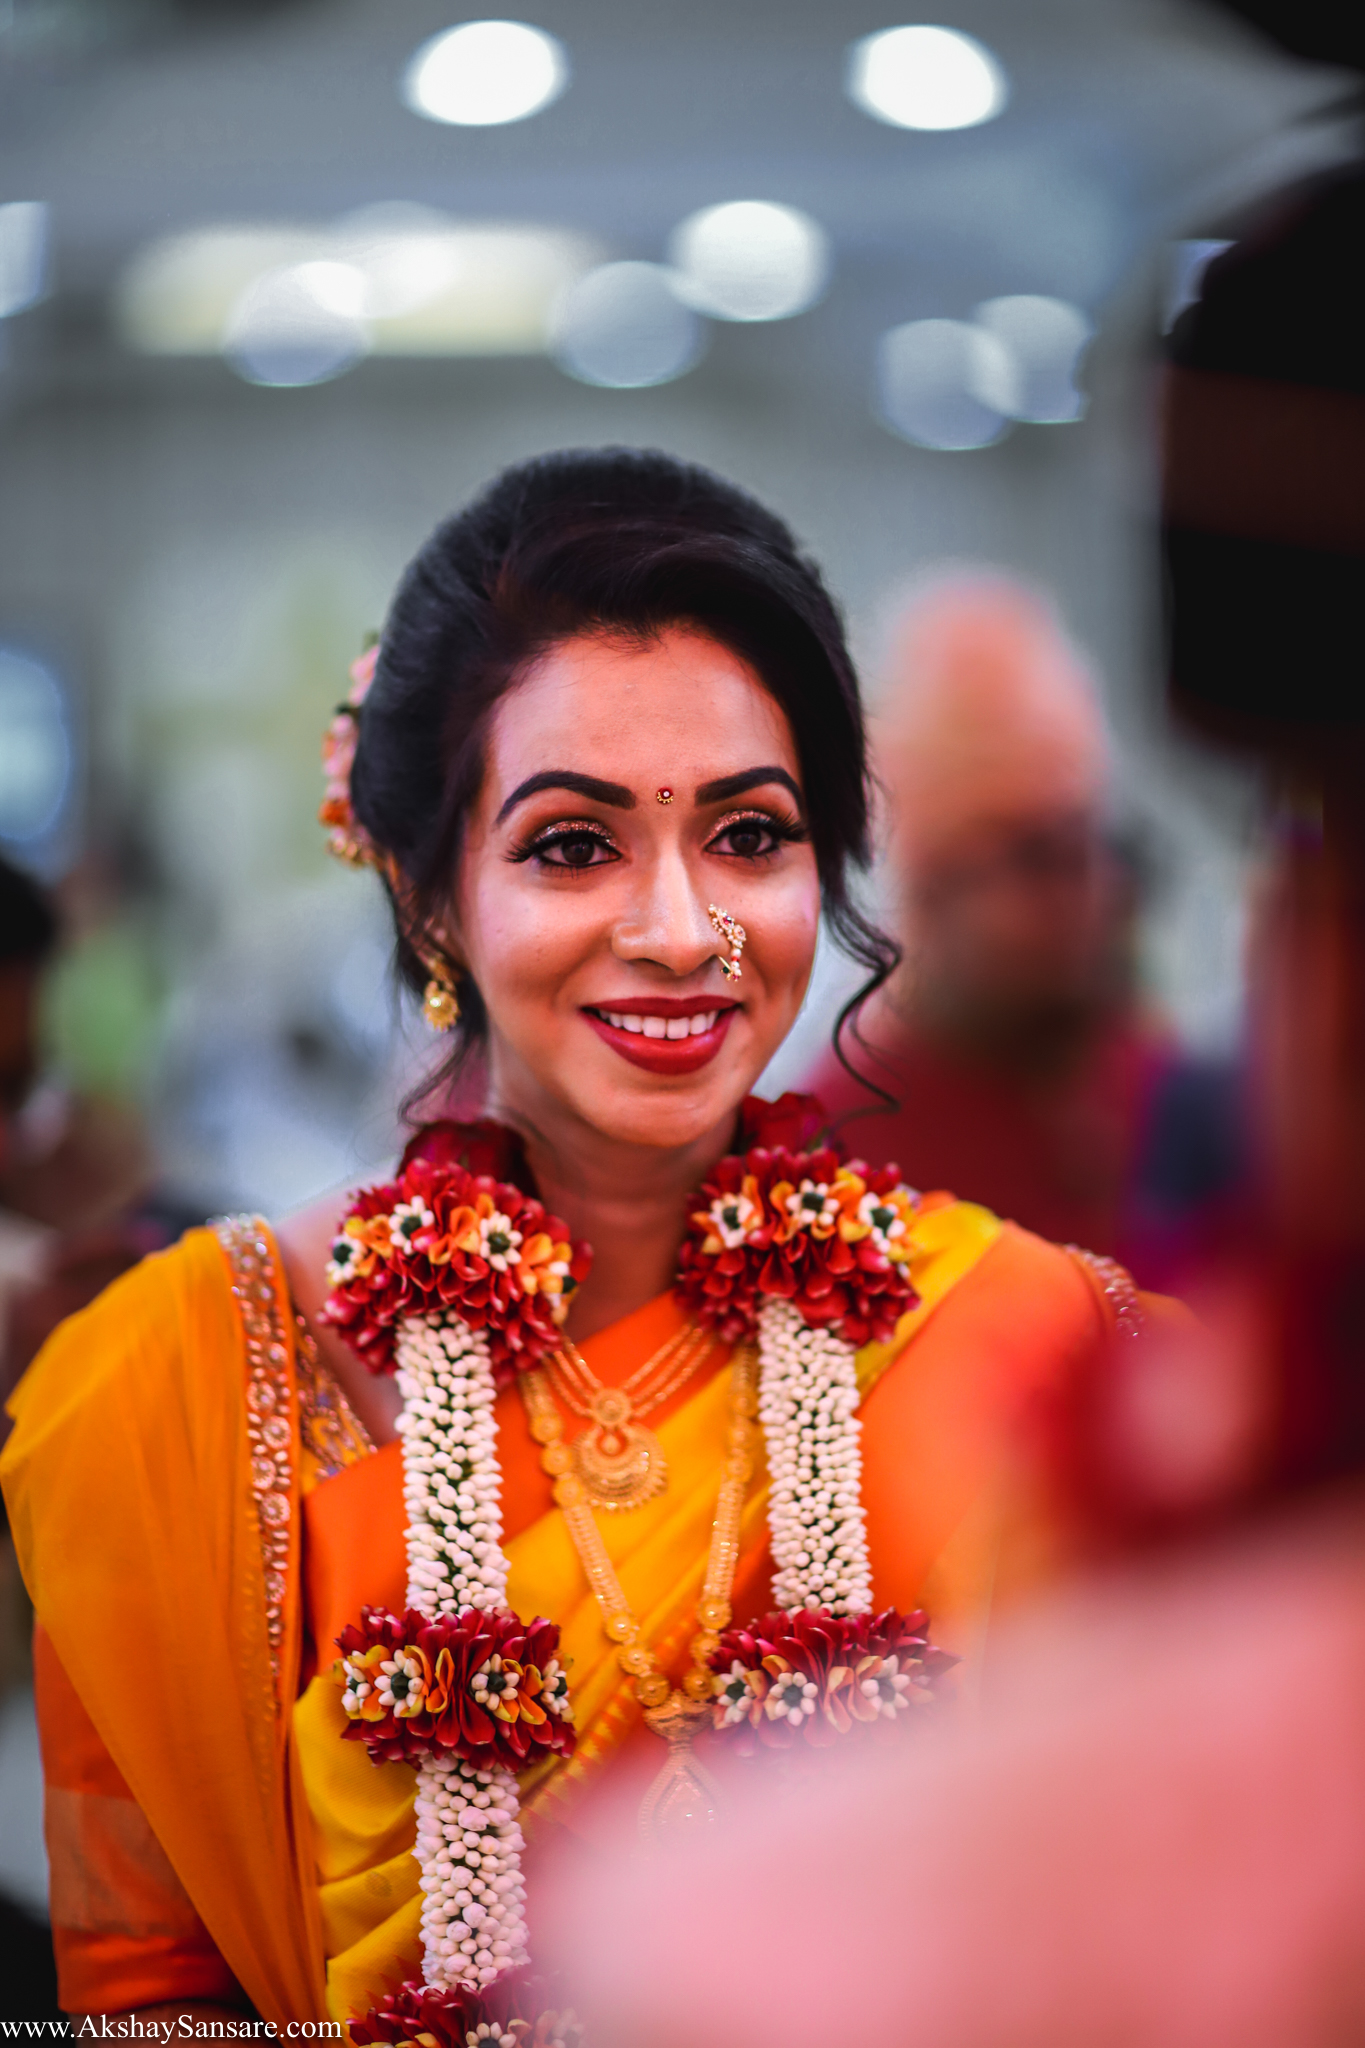 Nupur & Rohan wedding Akshay Sansare Photography best wedding photographer in mumbai India Candid(40).jpg